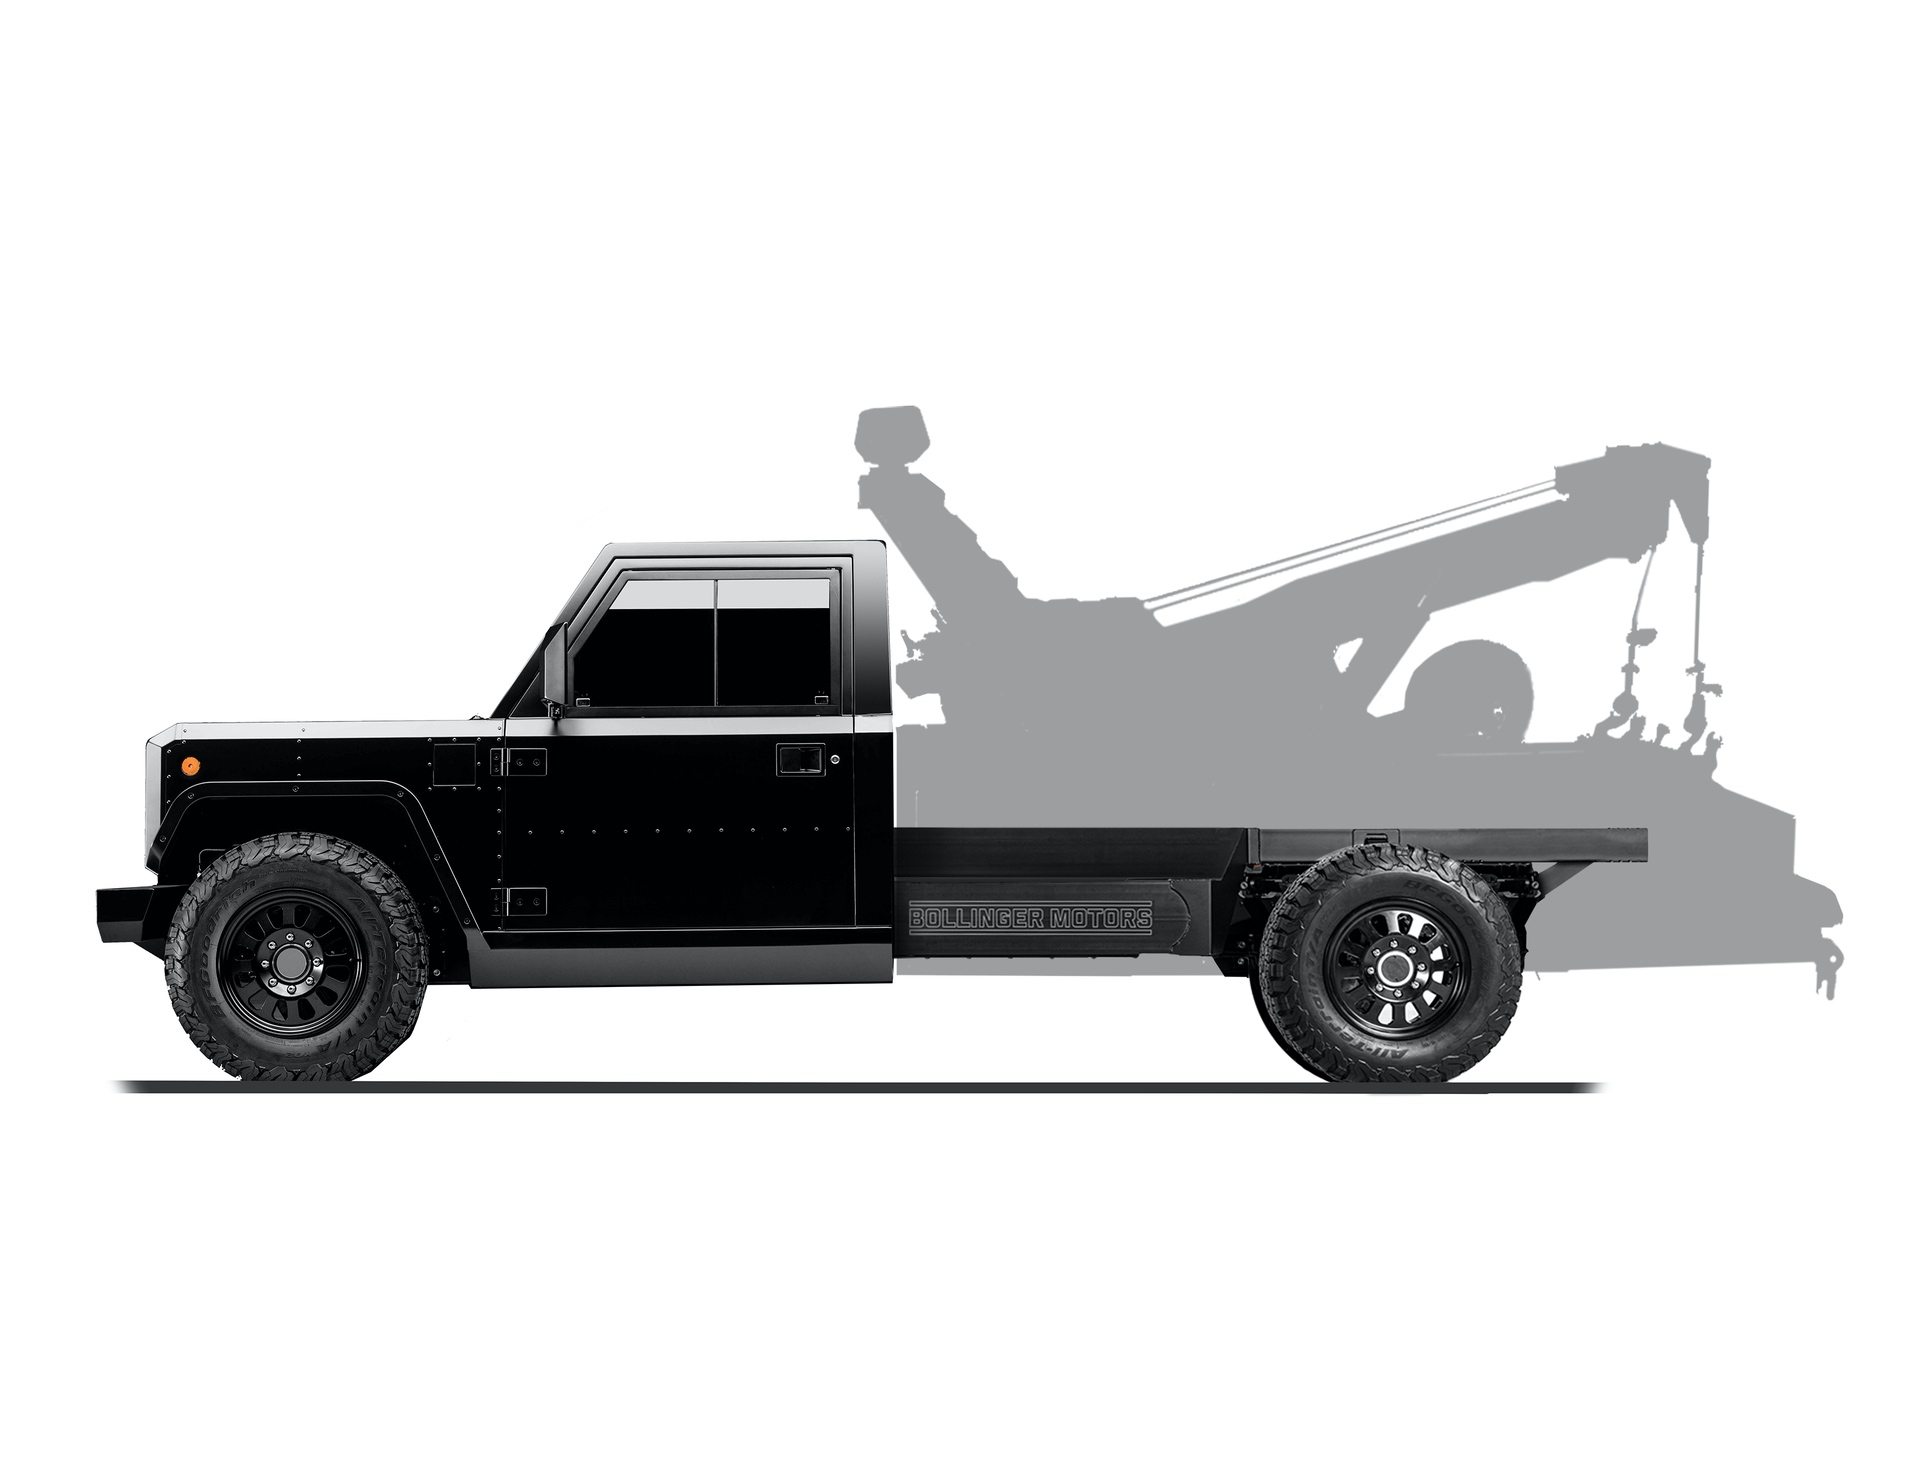 Bollinger-Motors-B2-Chassis-Cab-Tow-Truck-side